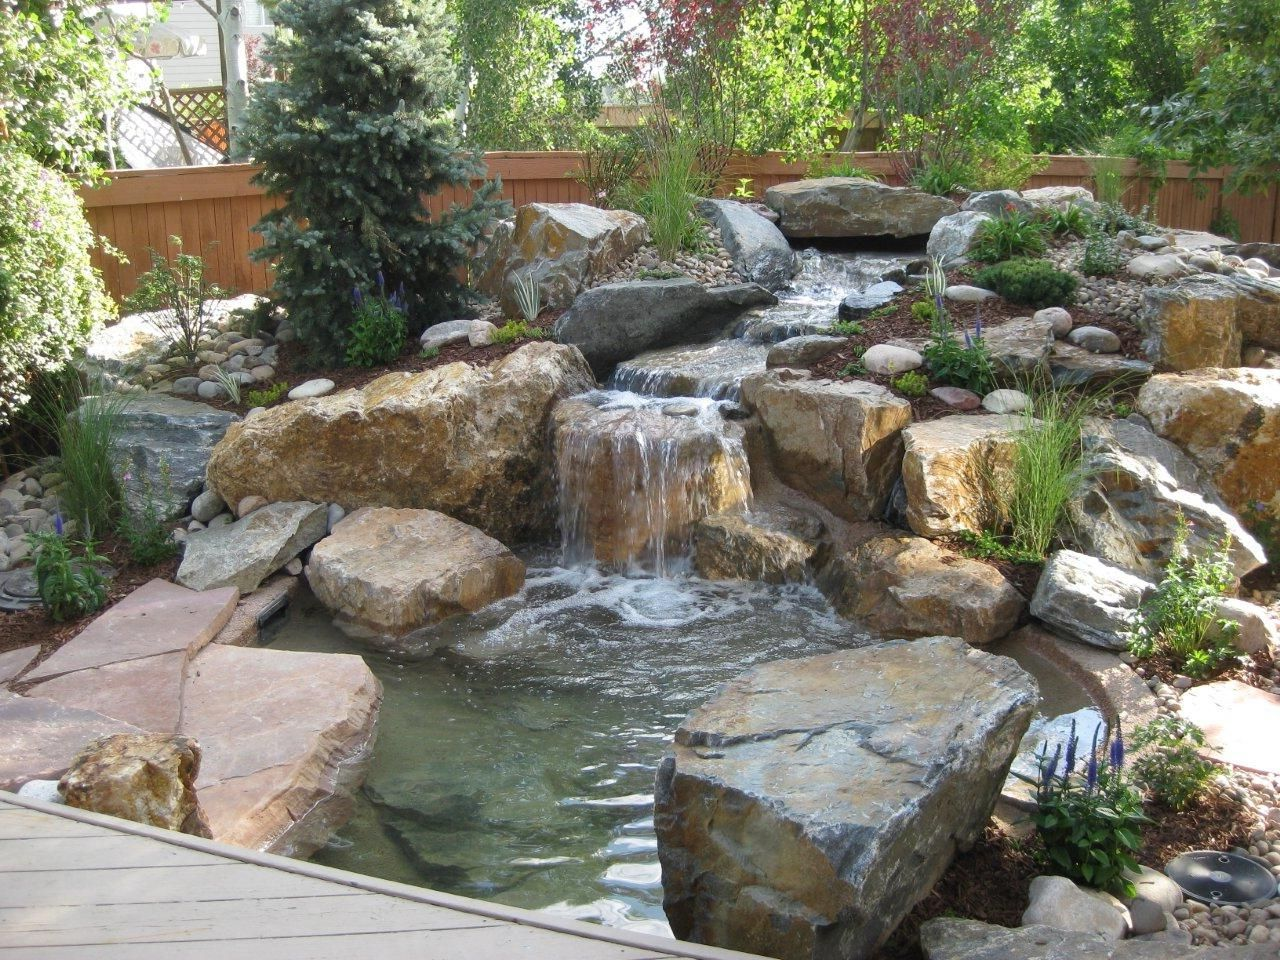 Backyard water features in japanese garden concept for Backyard water garden